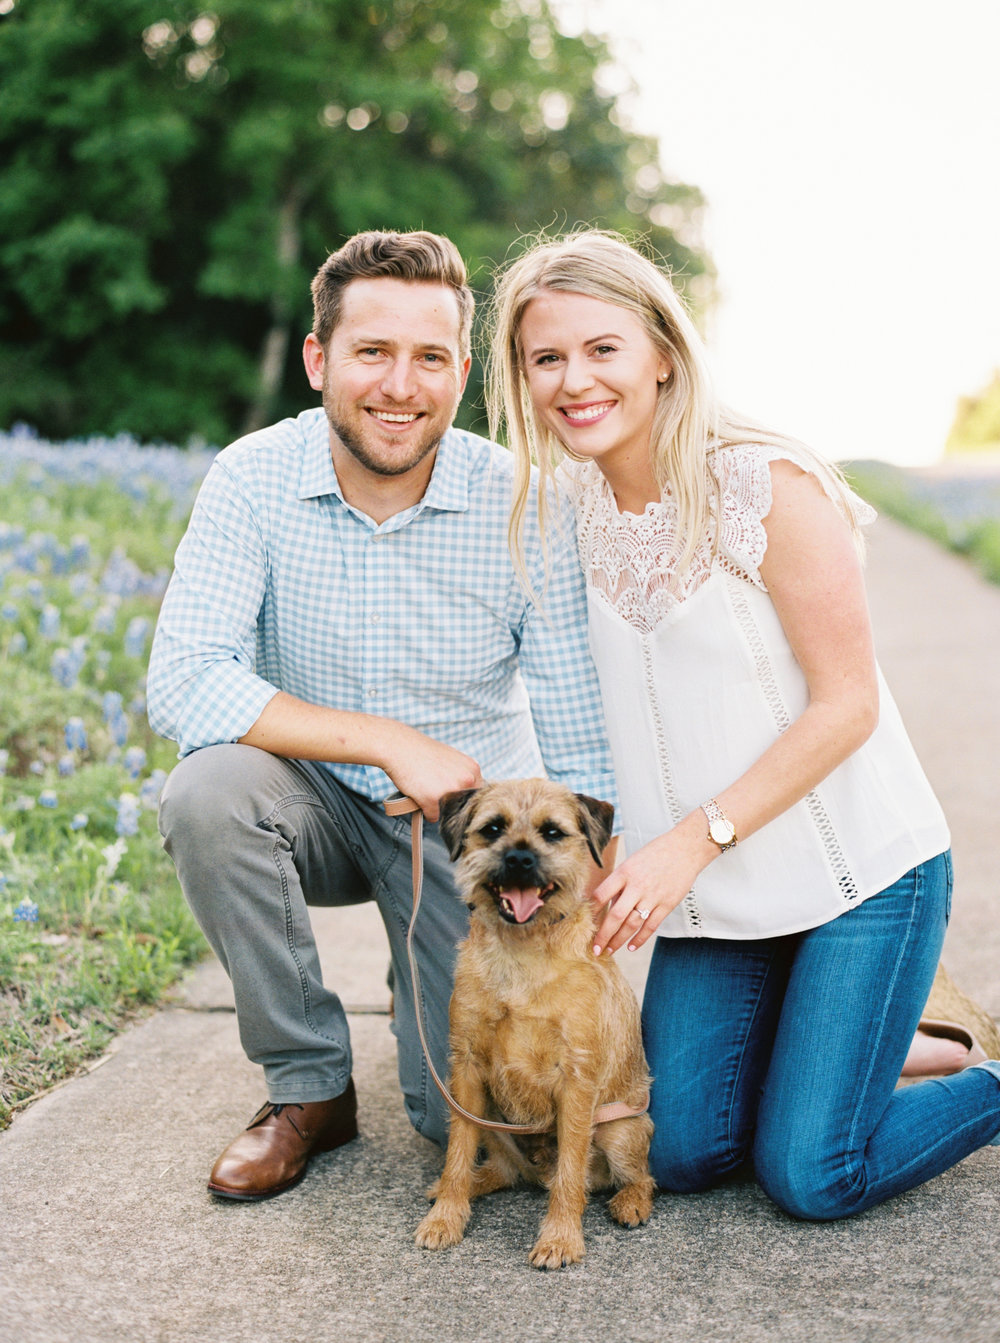 Summer engagement session with a puppy